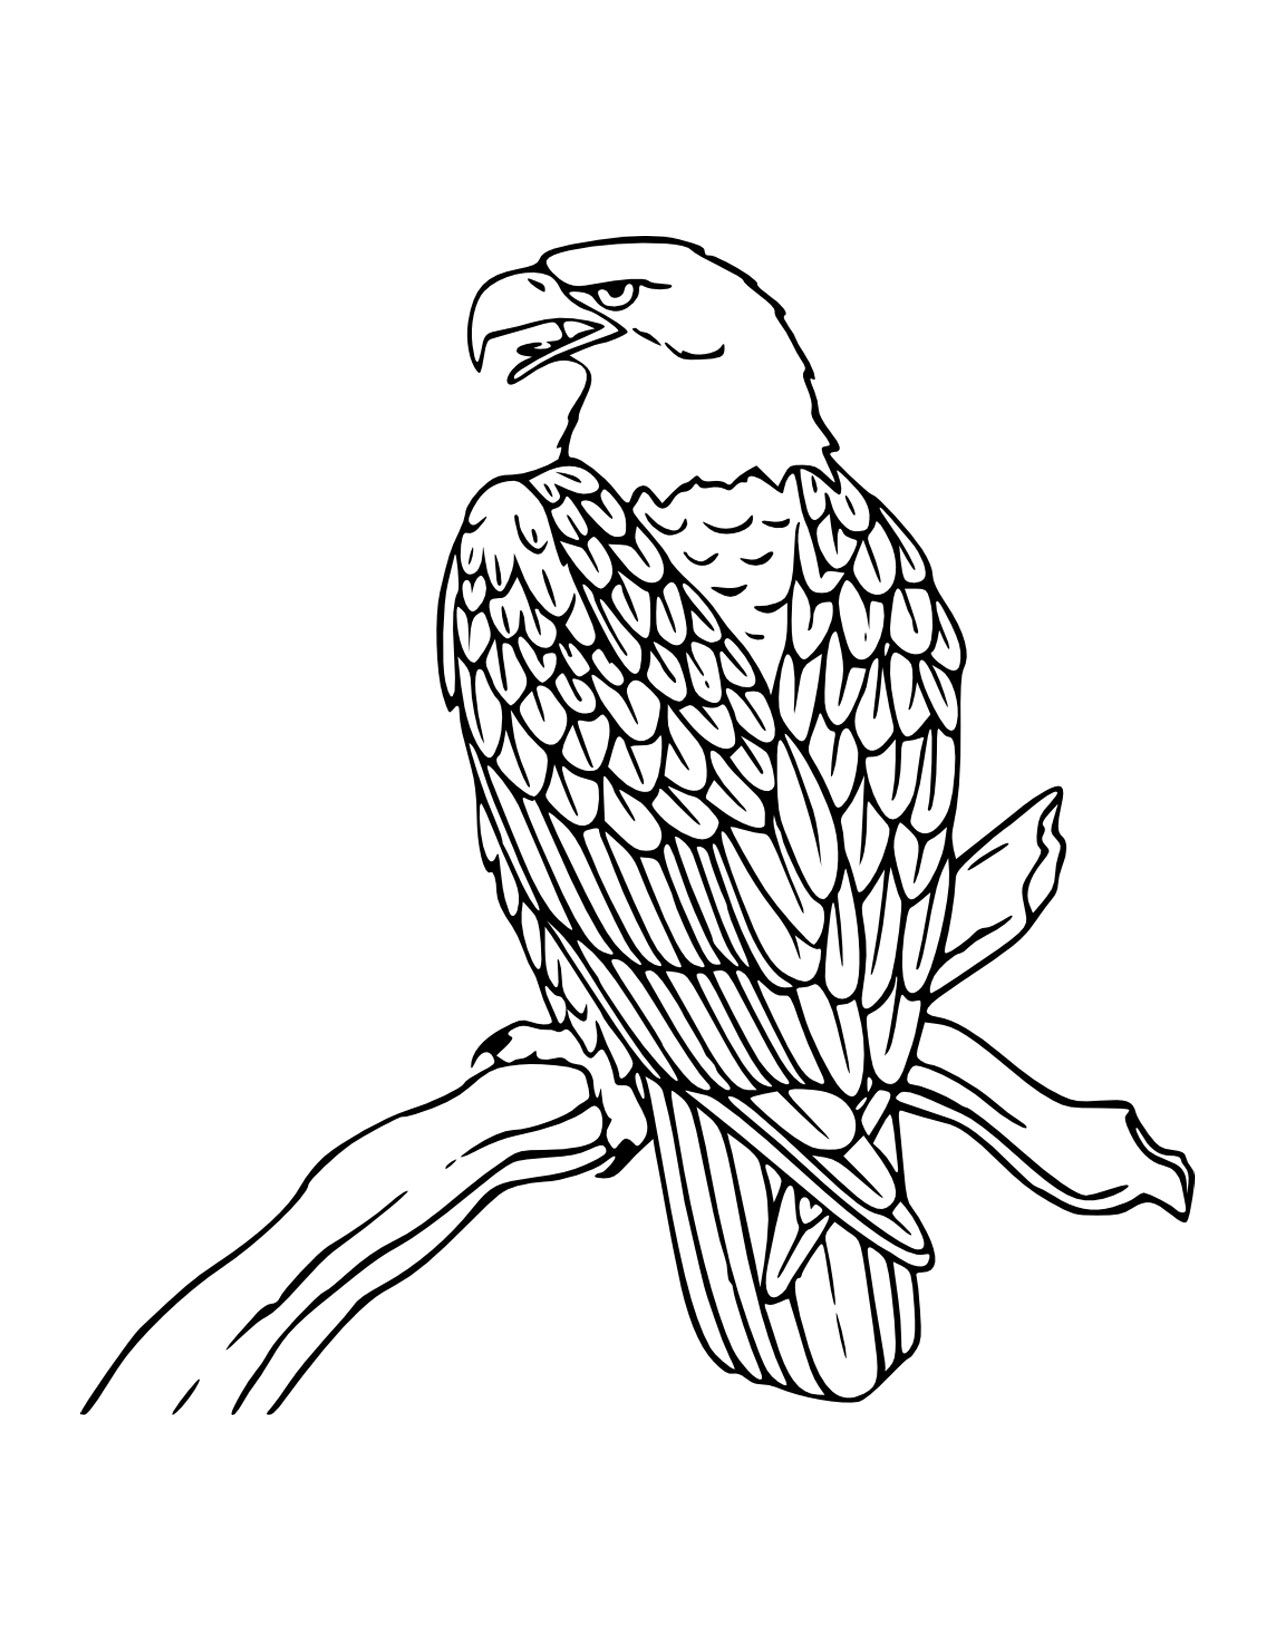 eagle colouring pictures free printable eagle coloring pages for kids pictures eagle colouring